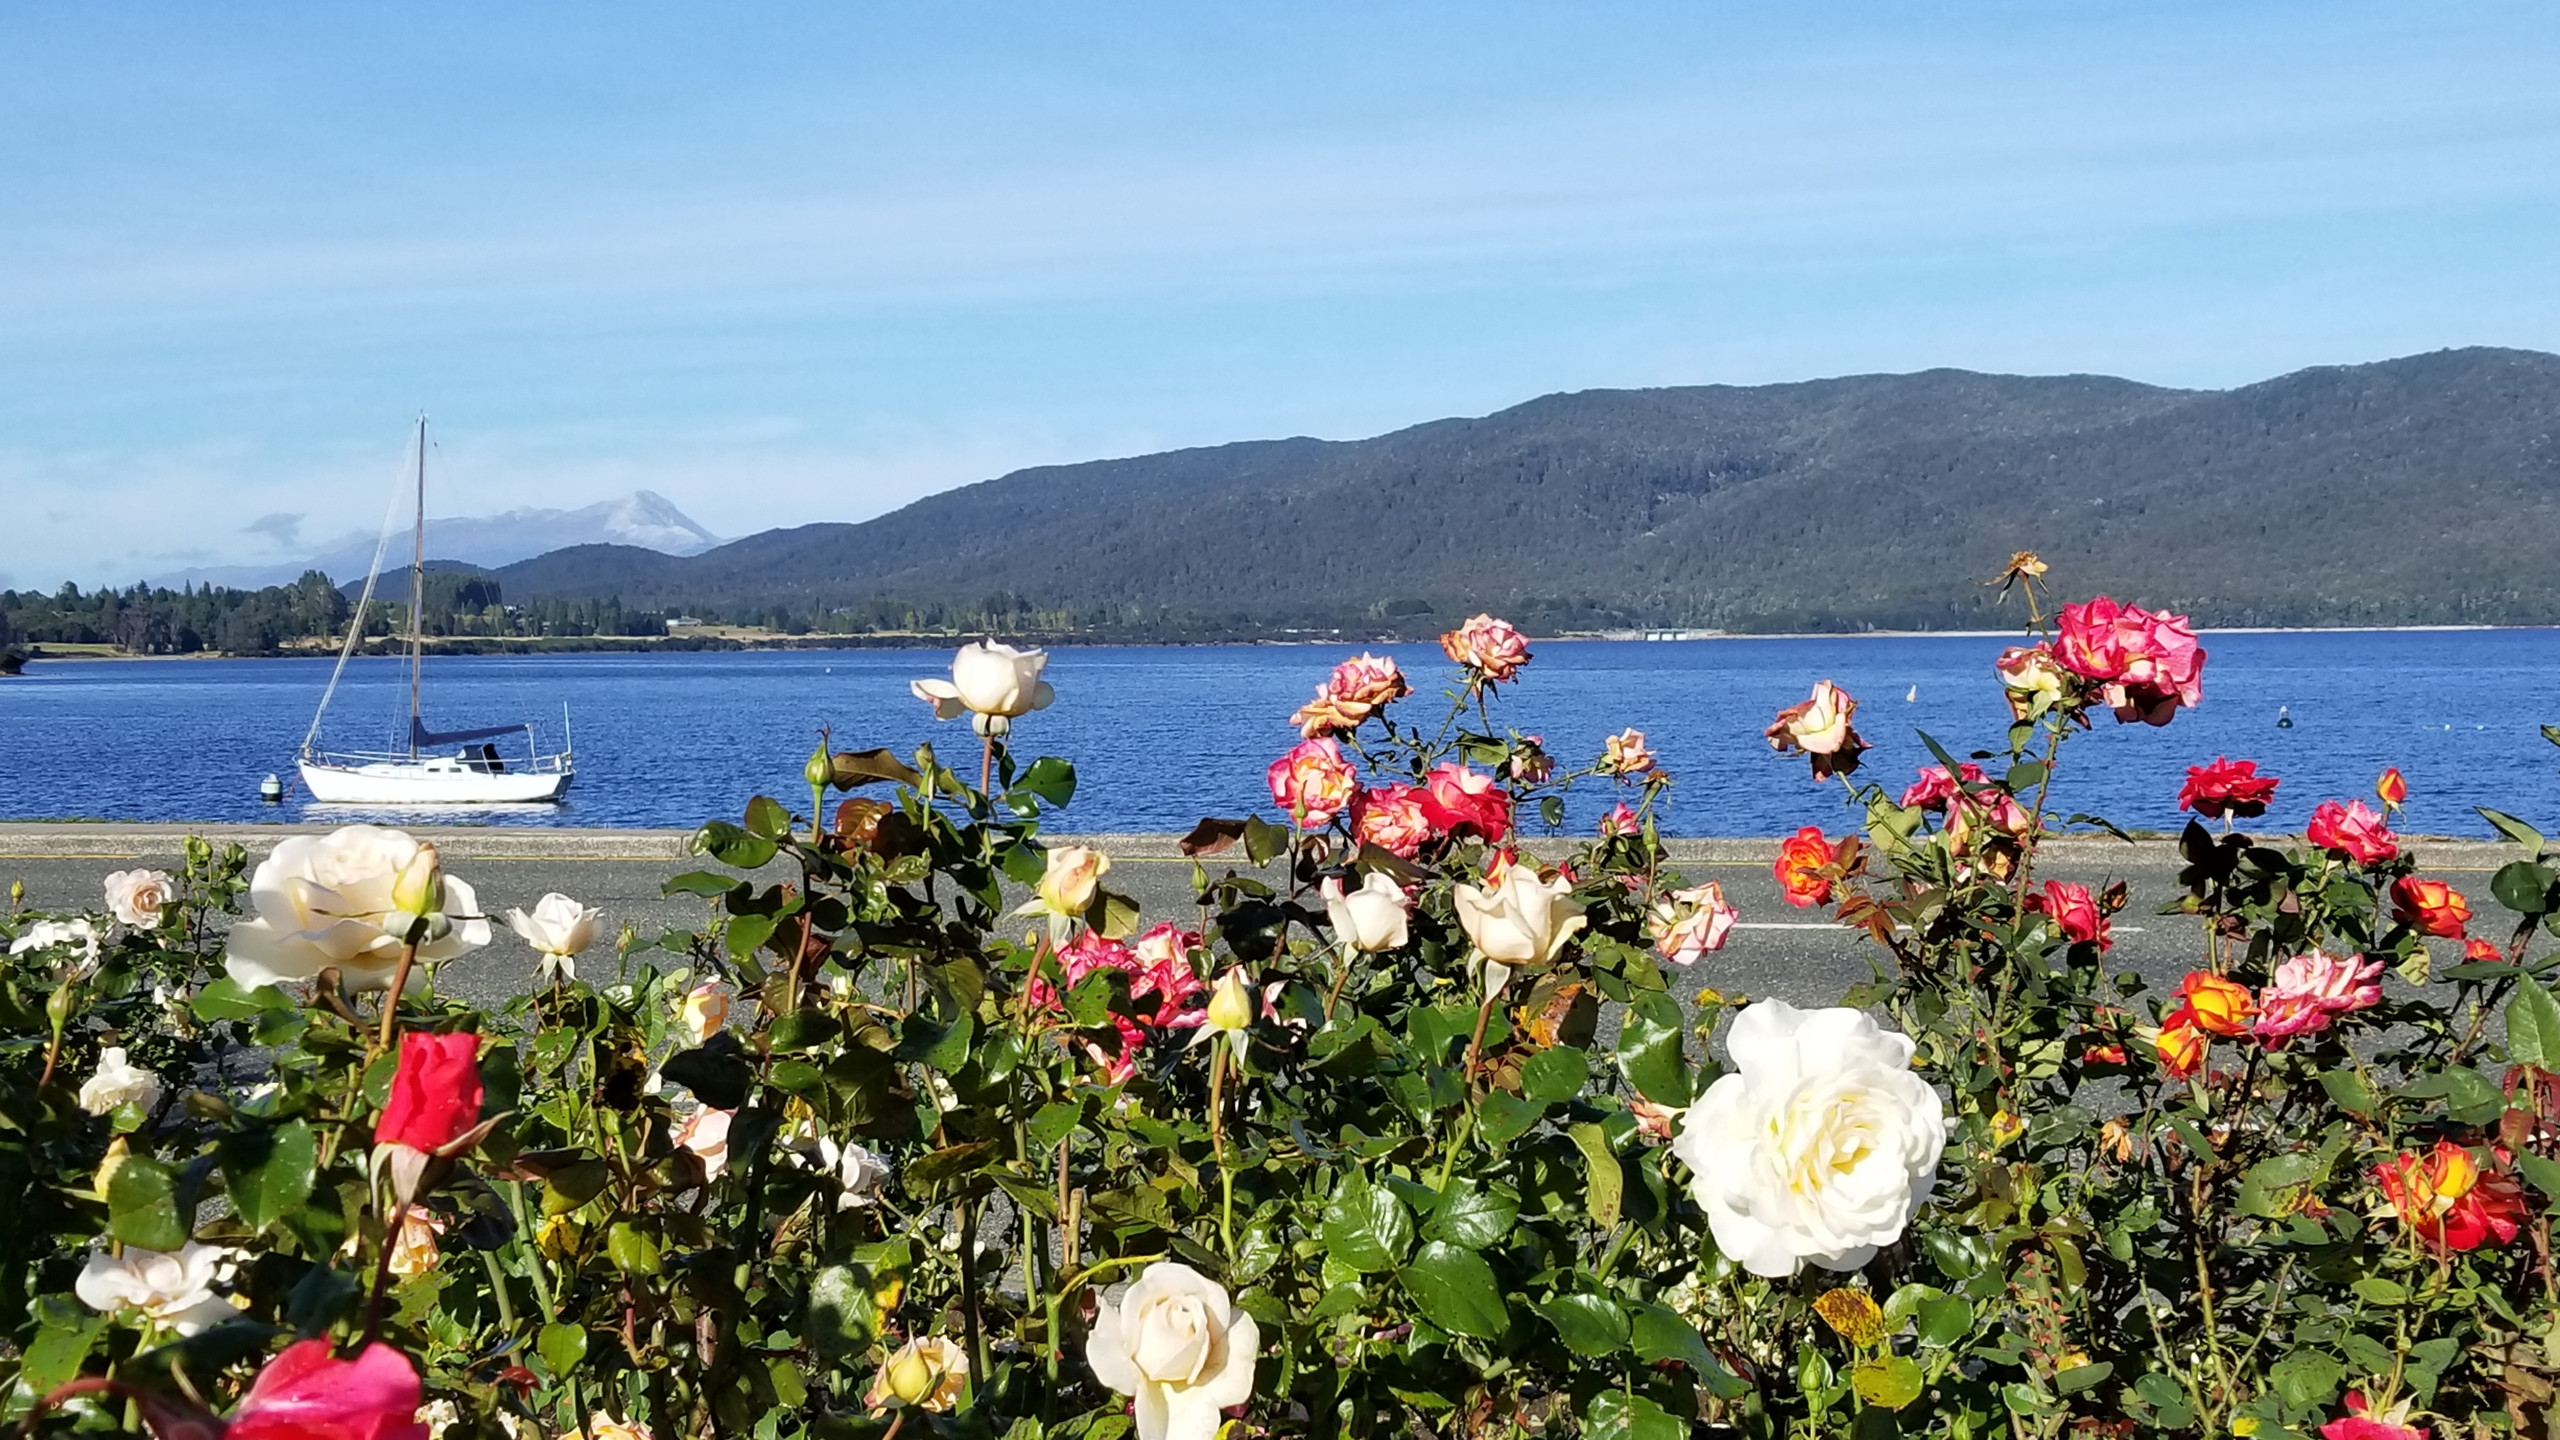 Te Anau lake, New Zealand attractions, New Zealand activities